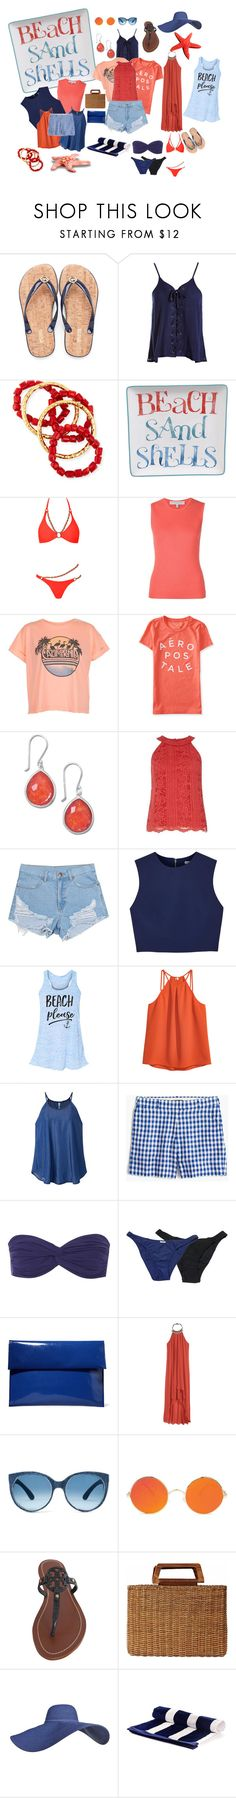 """Navy and bright coral weekend get-away"" by izimaher ❤ liked on Polyvore featuring Sans Souci, NEST Jewelry, Certified International, Agent Provocateur, Carolina Herrera, New Look, Aéropostale, Dorothy Perkins, Alice + Olivia and H&M"